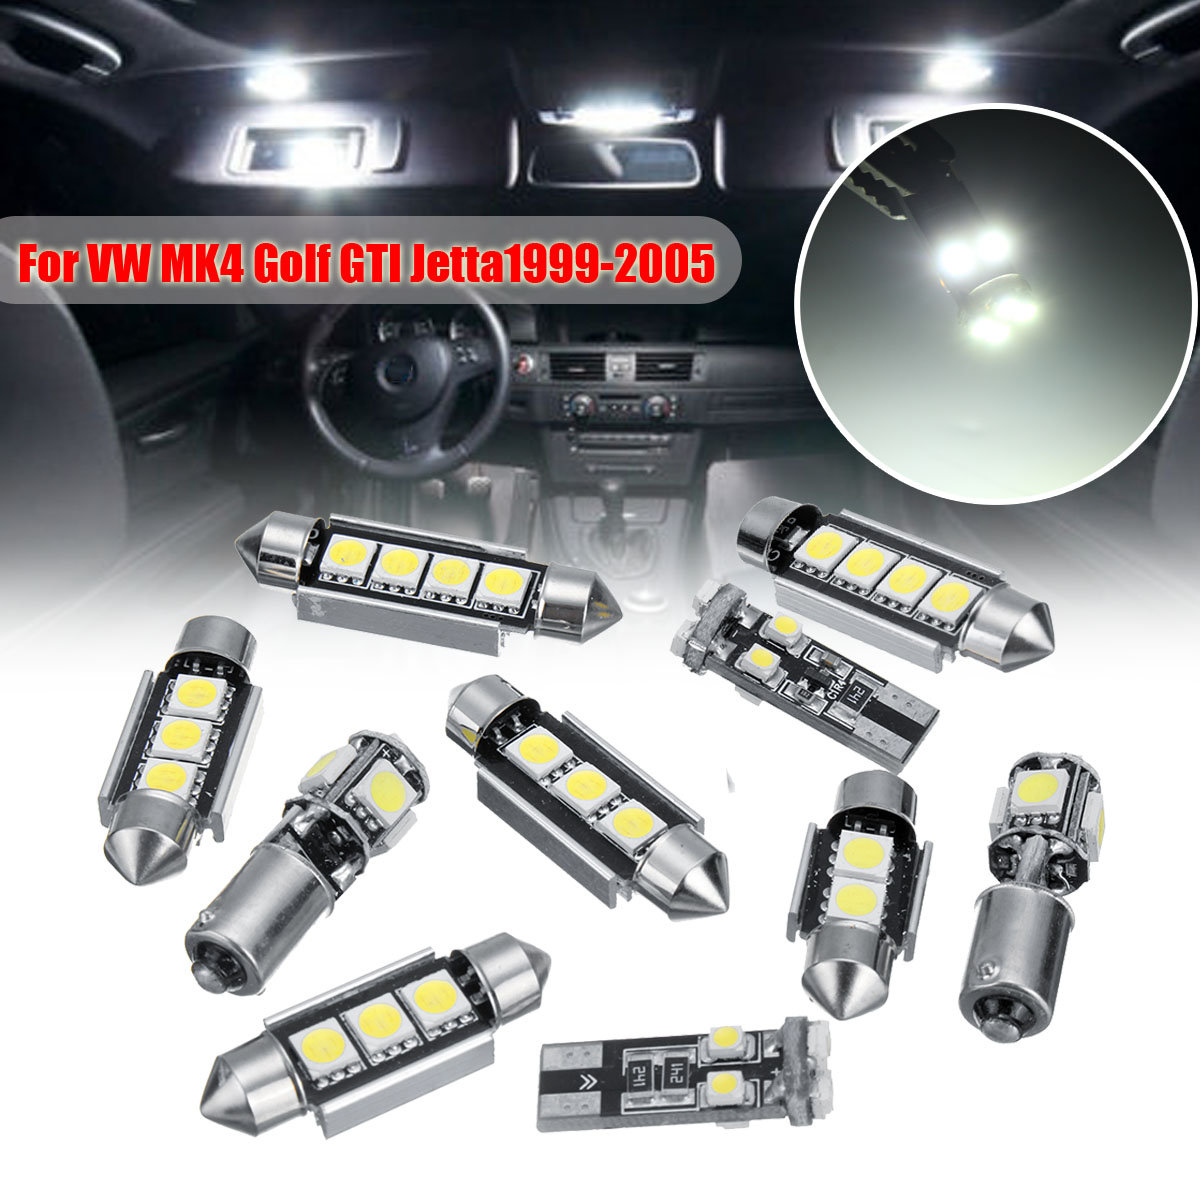 Autoleader Error Free White 10pcs Lights SMD LED Interior Lights Kit For Volkswagen for VW MK4 Golf GTI Jetta 1999-2005 image